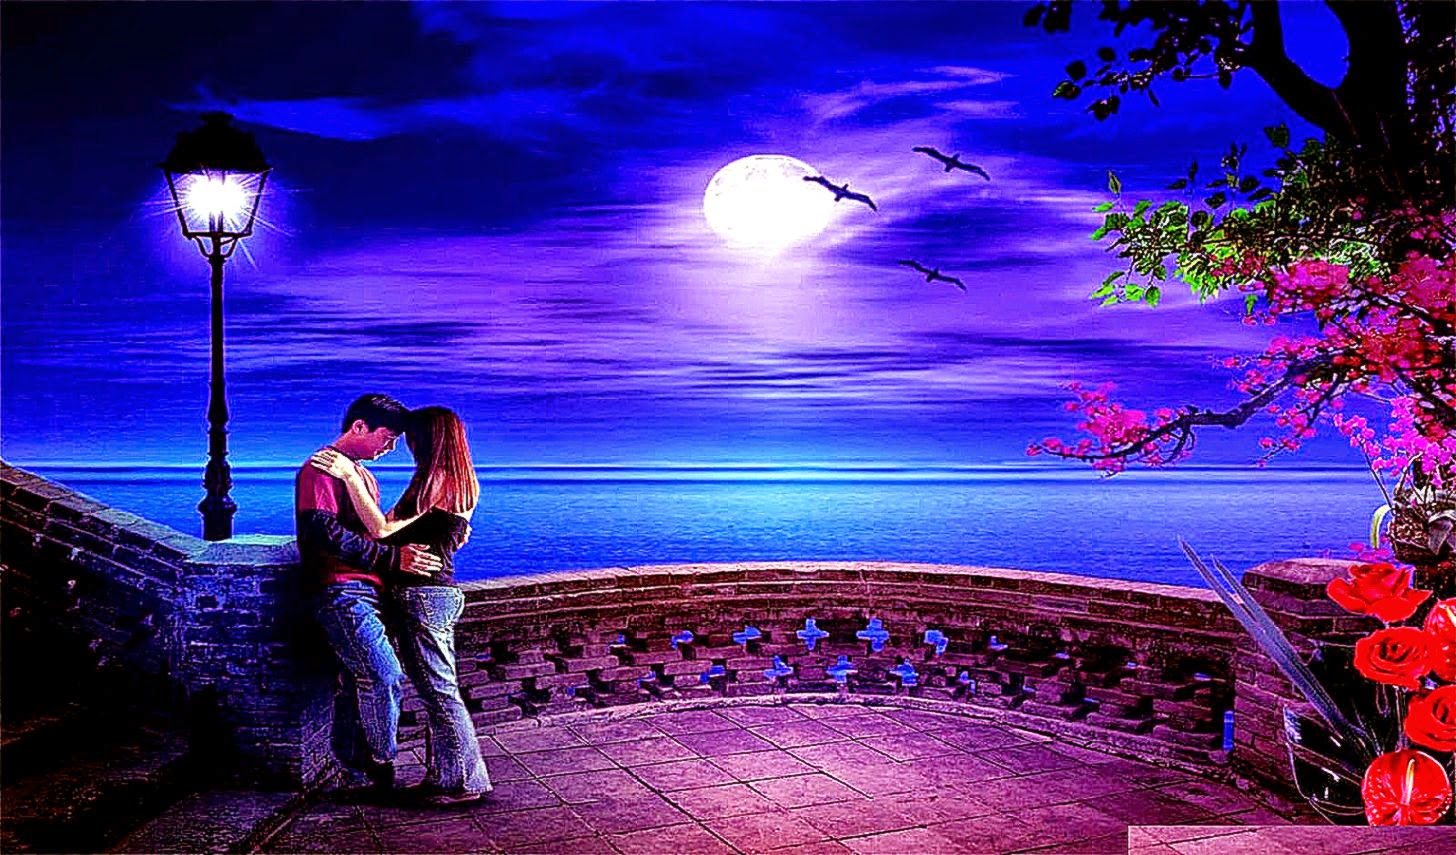 Best Love Wallpaper Dow : 3D Romantic Wallpaper Free Best Hd Wallpapers